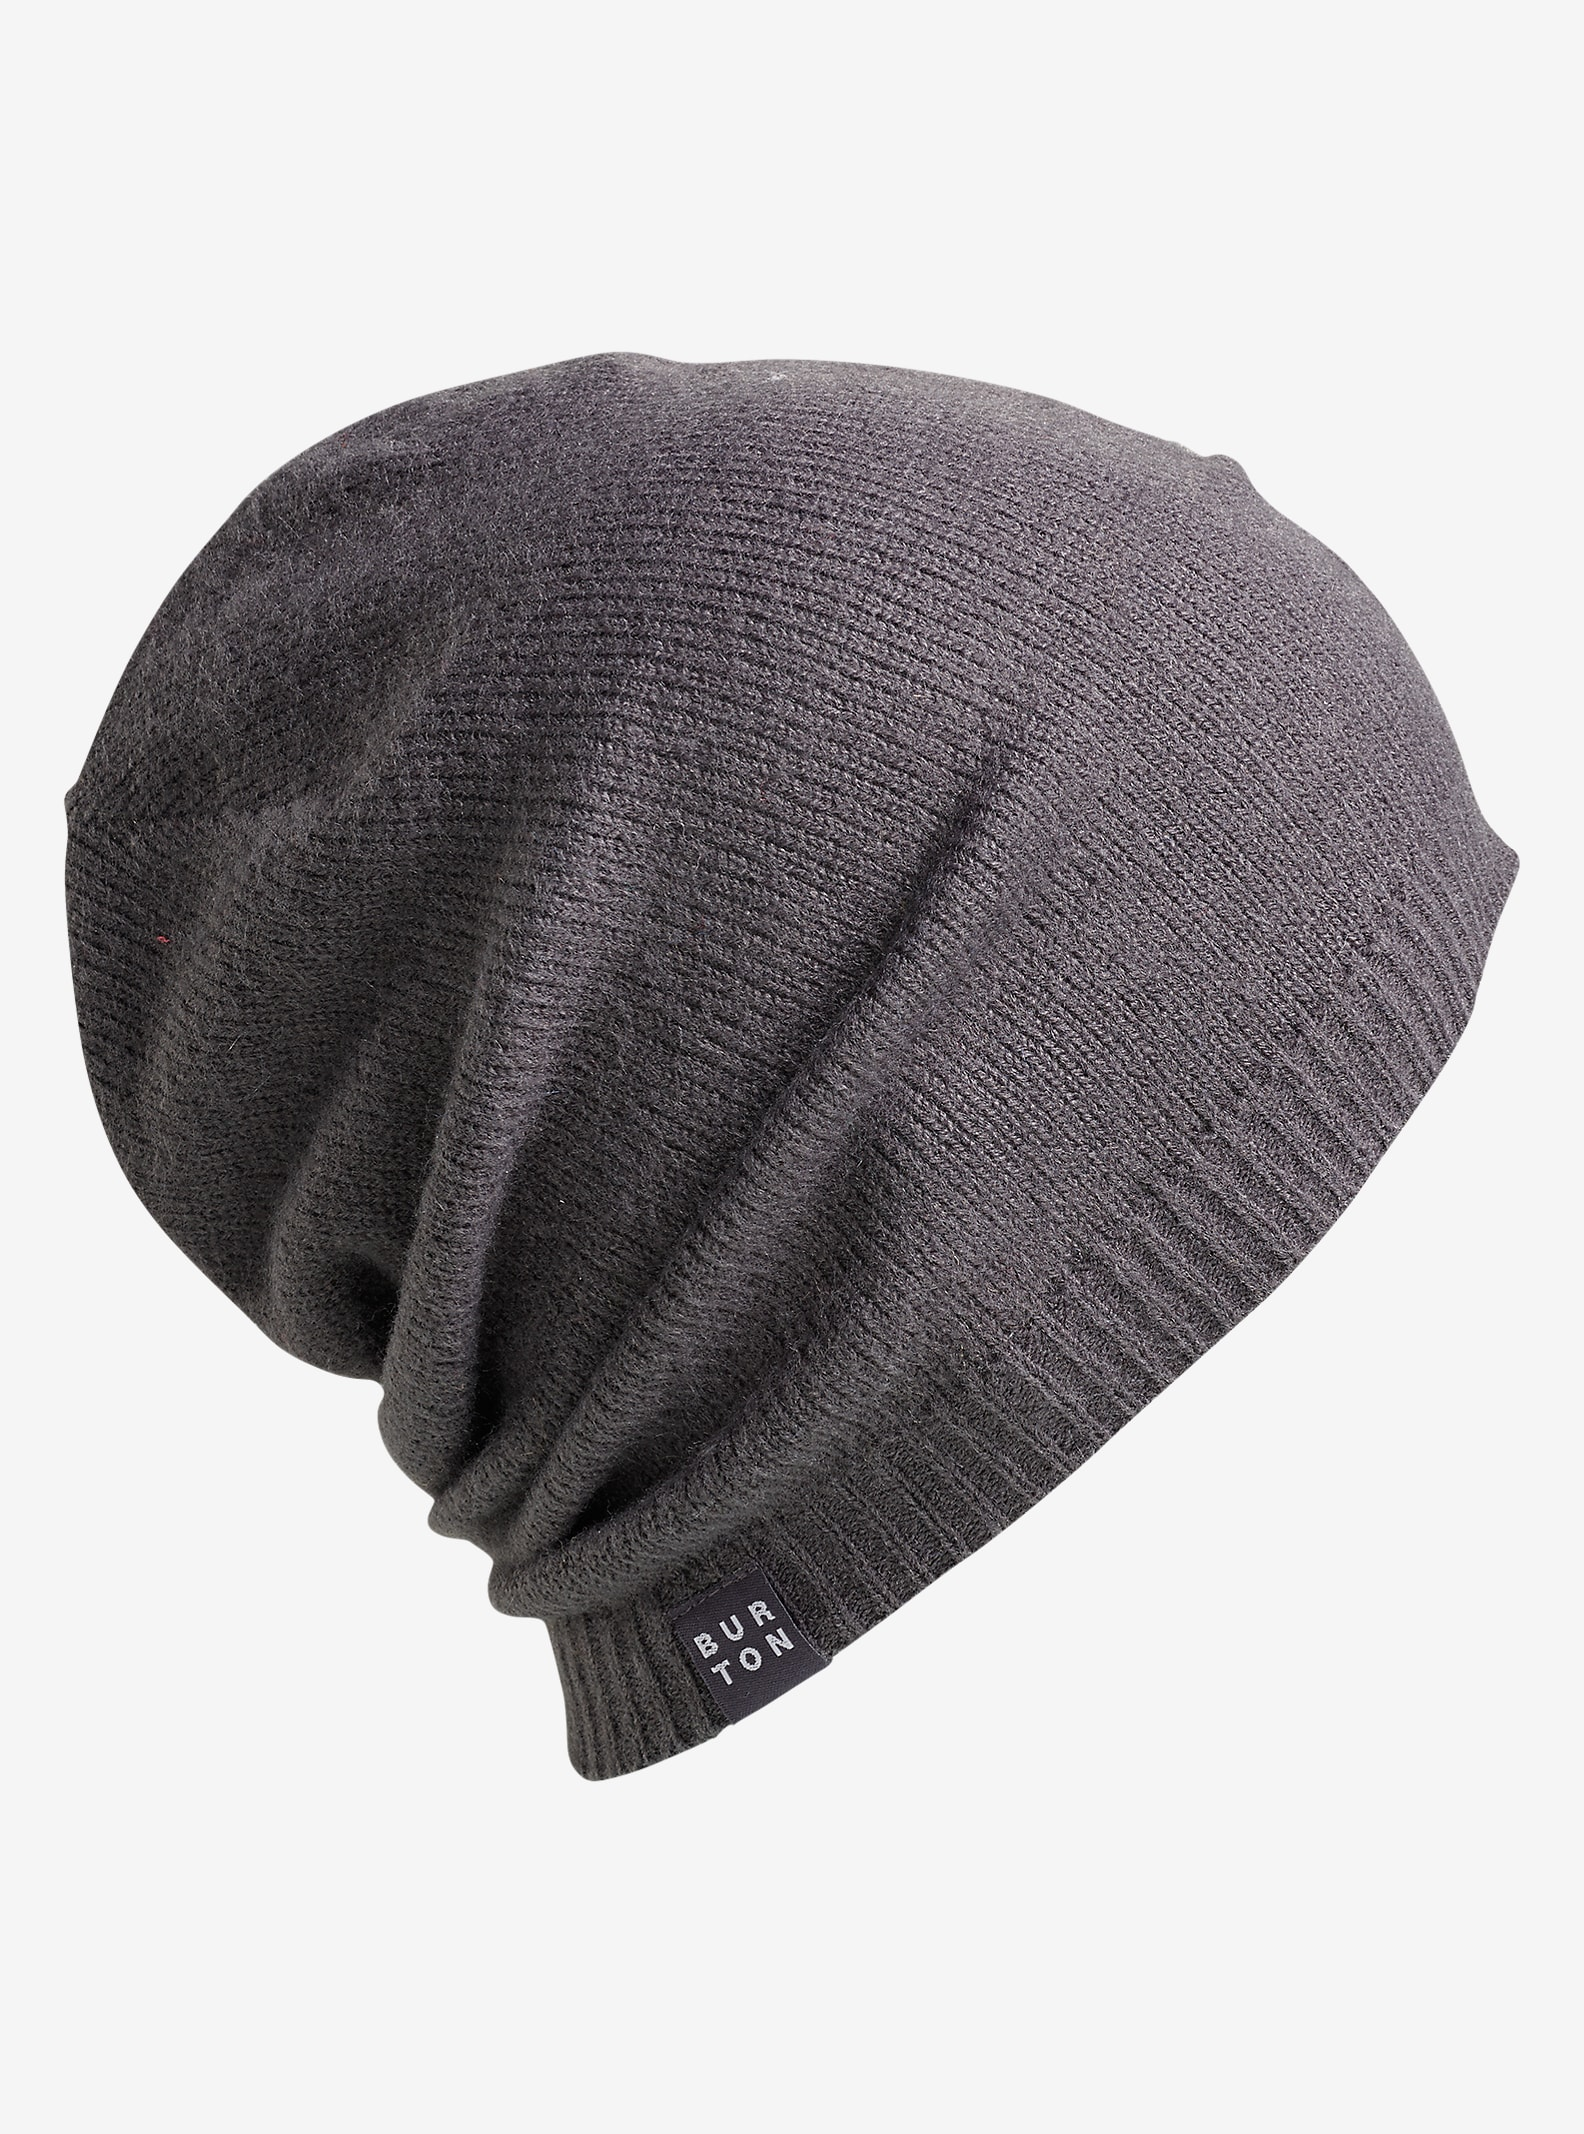 Burton Trevor Beanie shown in Faded Heather